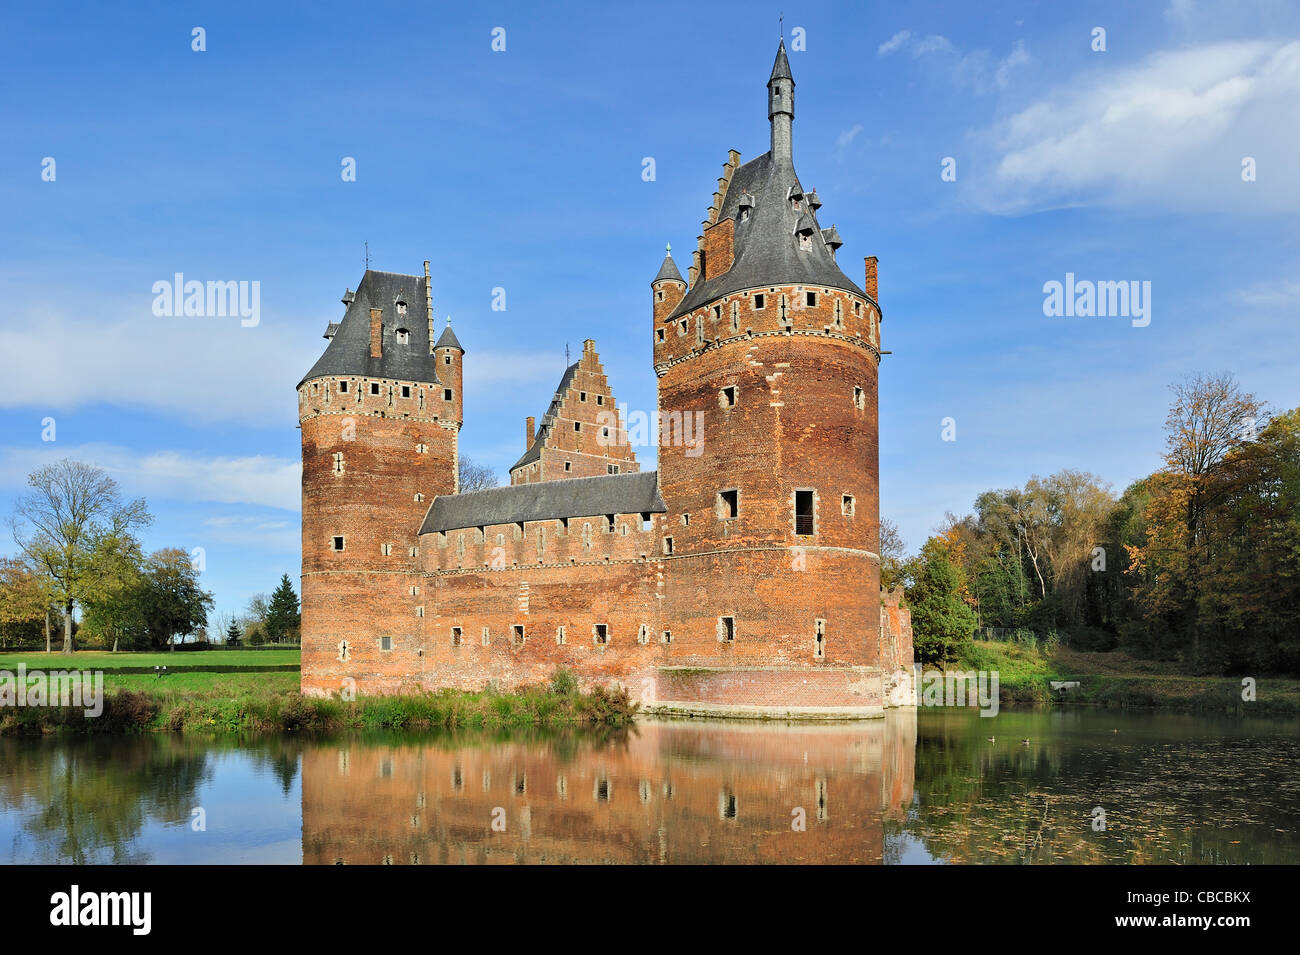 Surrounded By A Moat Stock Photos Surrounded By A Moat Stock